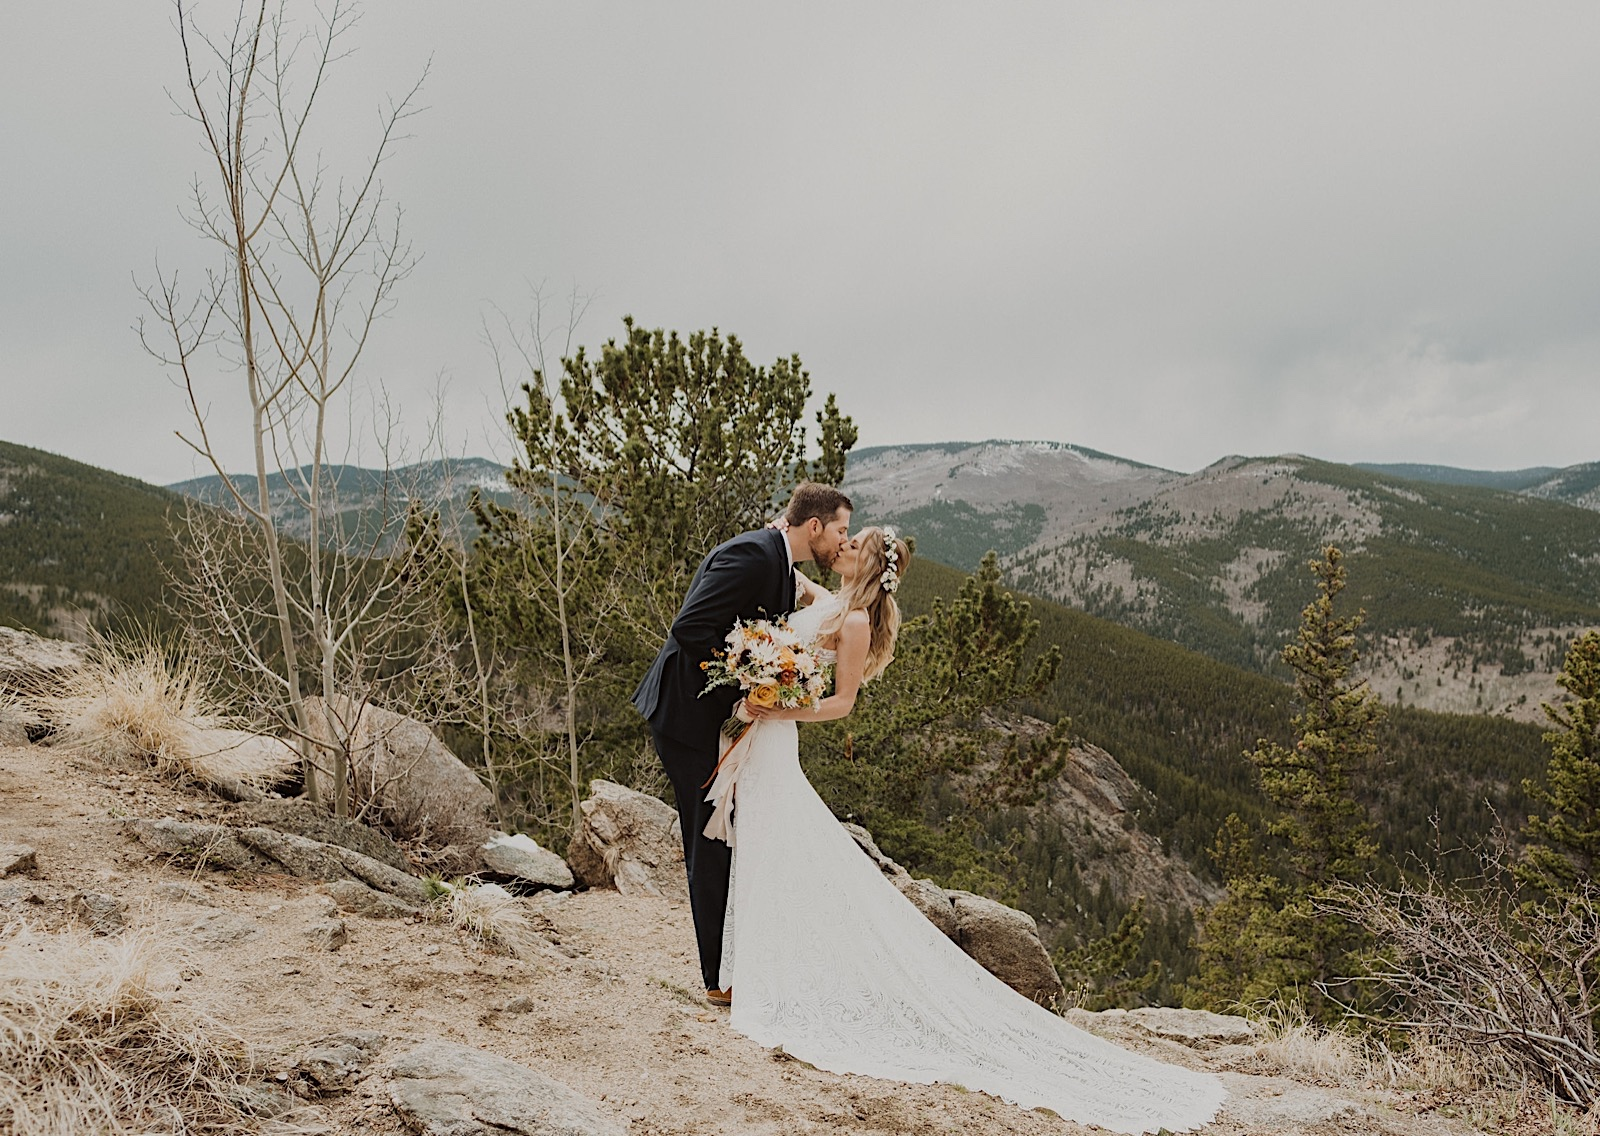 Blackstone Rivers Ranch Wedding, Colorado Wedding Photographer, Colorado Elopement Photographer, Colorado Mountain Wedding, Colorado Wedding Ideas, Colorado Wedding Inspiration, Destination Wedding in Colorado, Places to Elope in Colorado, Places to get married in Colorado, Boho Wedding Inspiration, Wedding Photography, Wedding ideas, Wedding Inspiration, First Look, Bride and Groom, Bride and Groom Posing, Wedding posing, Echo Lake